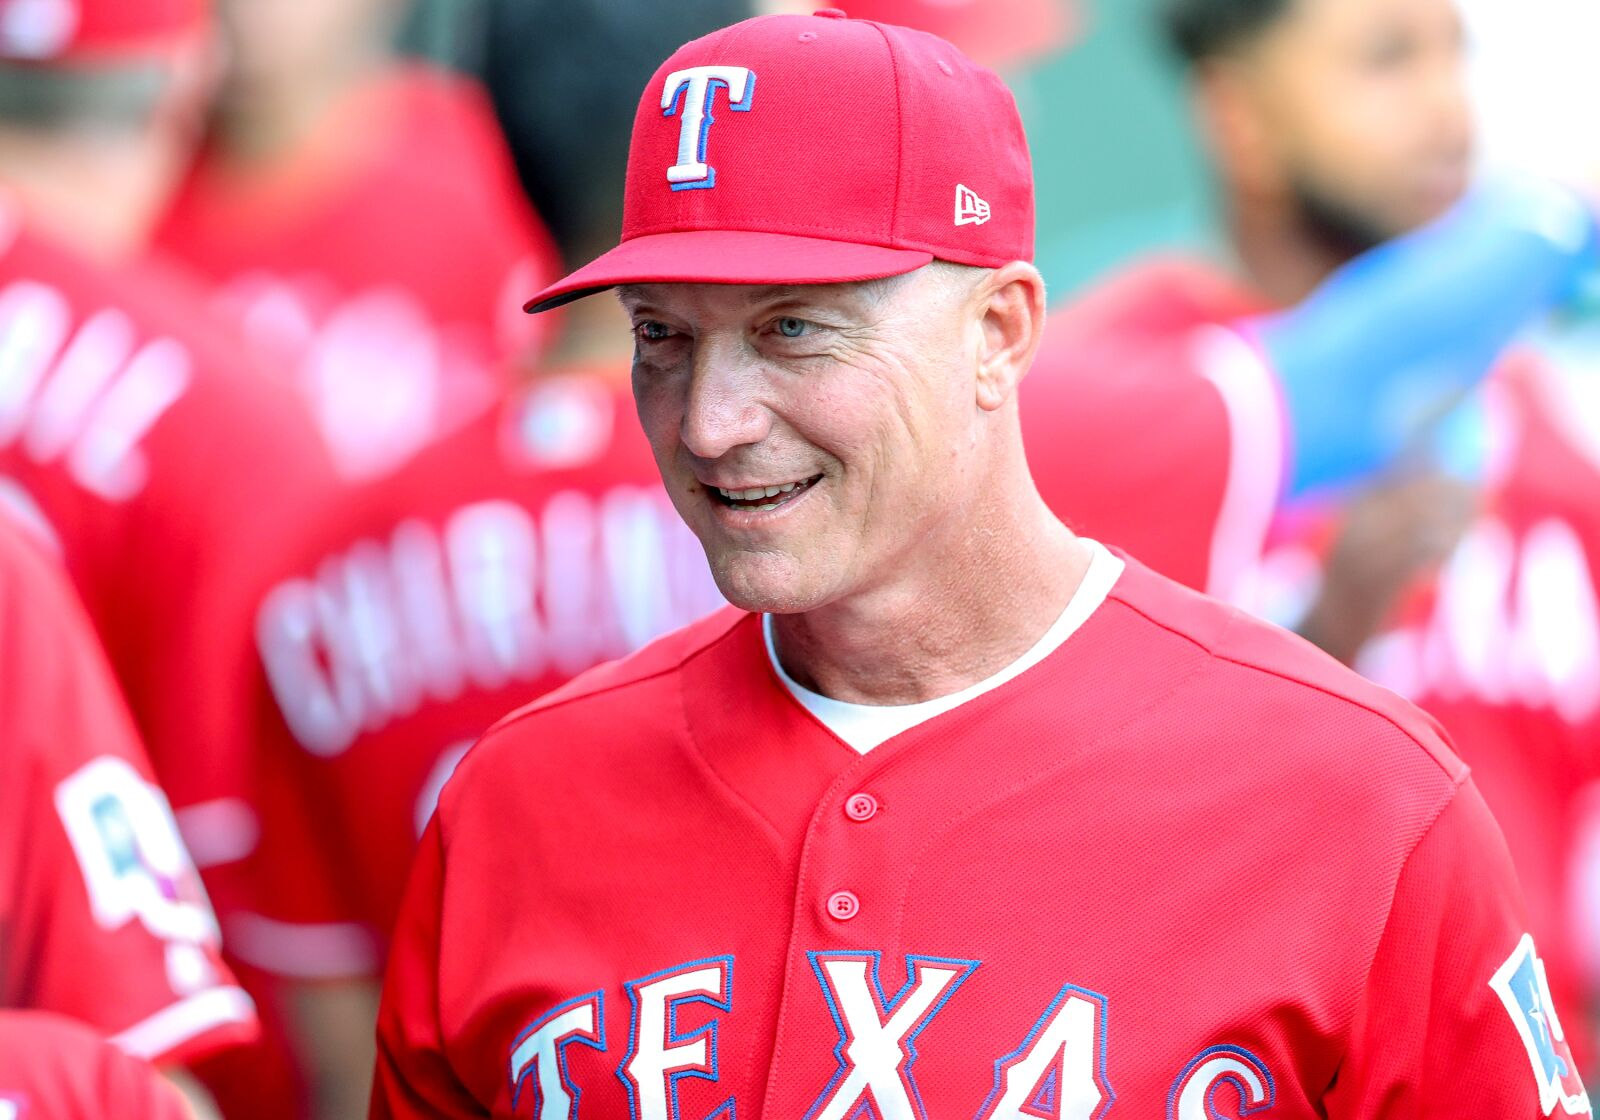 Houston Astros: Jeff Banister is the strongest managerial candidate yet